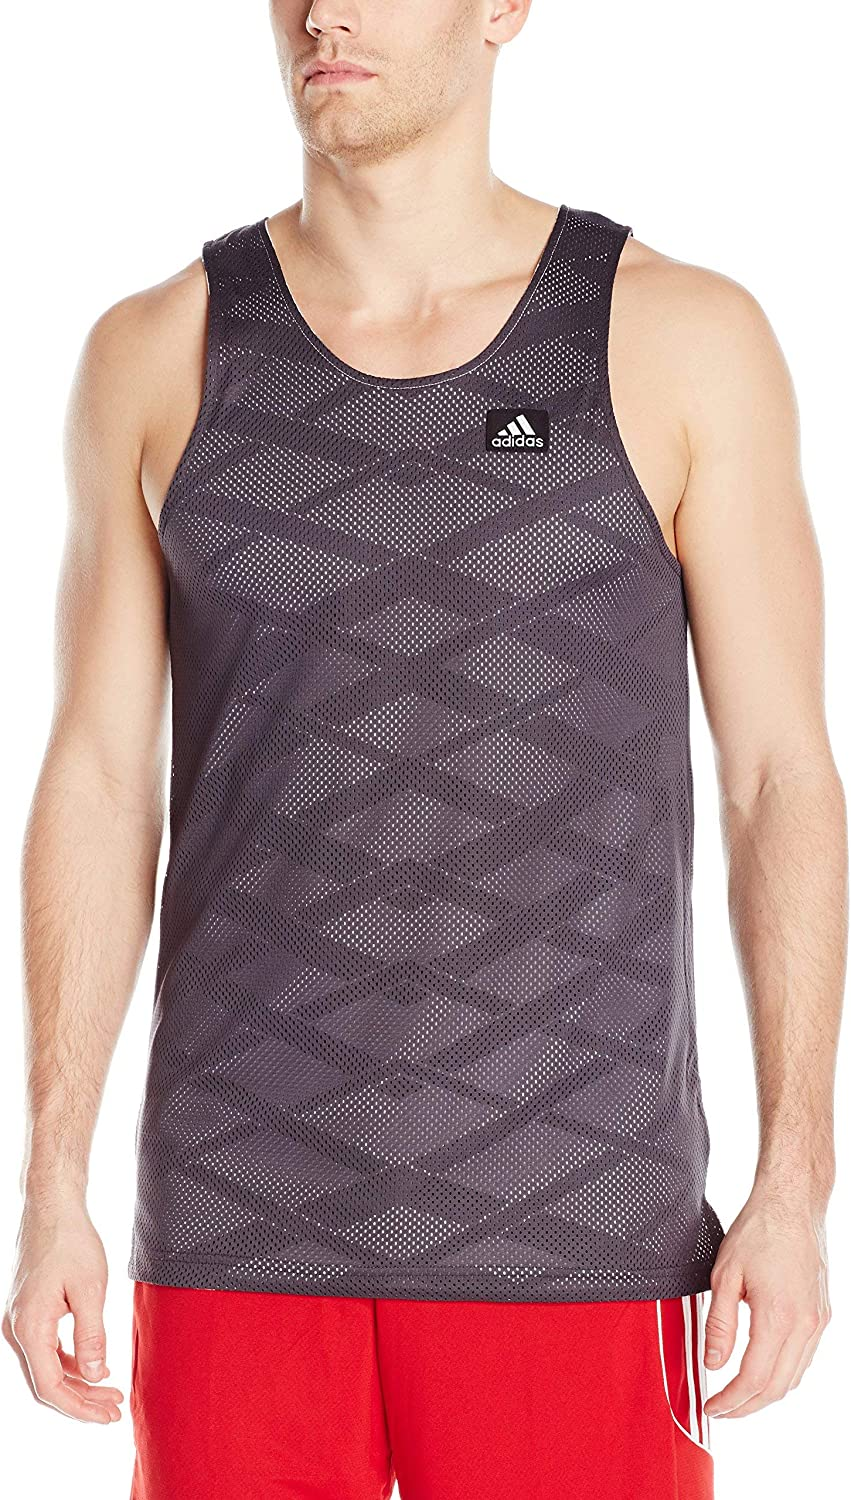 adidas High quality Men's Basketball Today's only ABL Reversible Tank Top